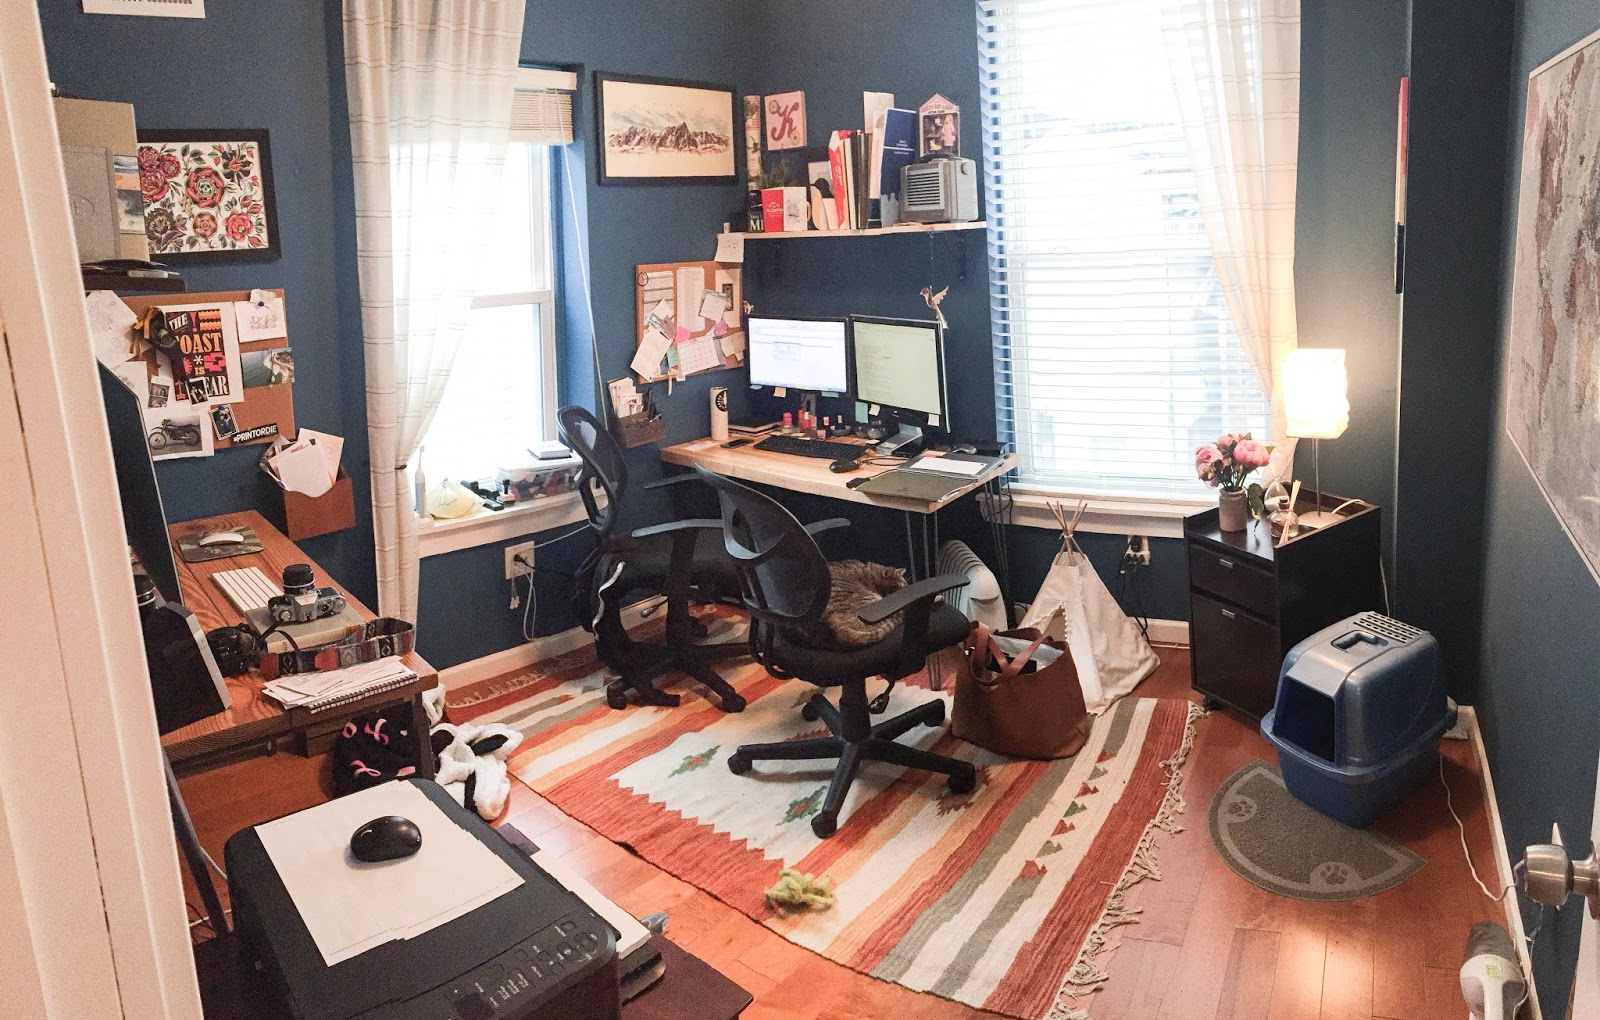 All We Needed For This Home Office Makeover Was A Custom Desk To Turn A  Cluttered Catch All Room Into A Bright And Airy Study!